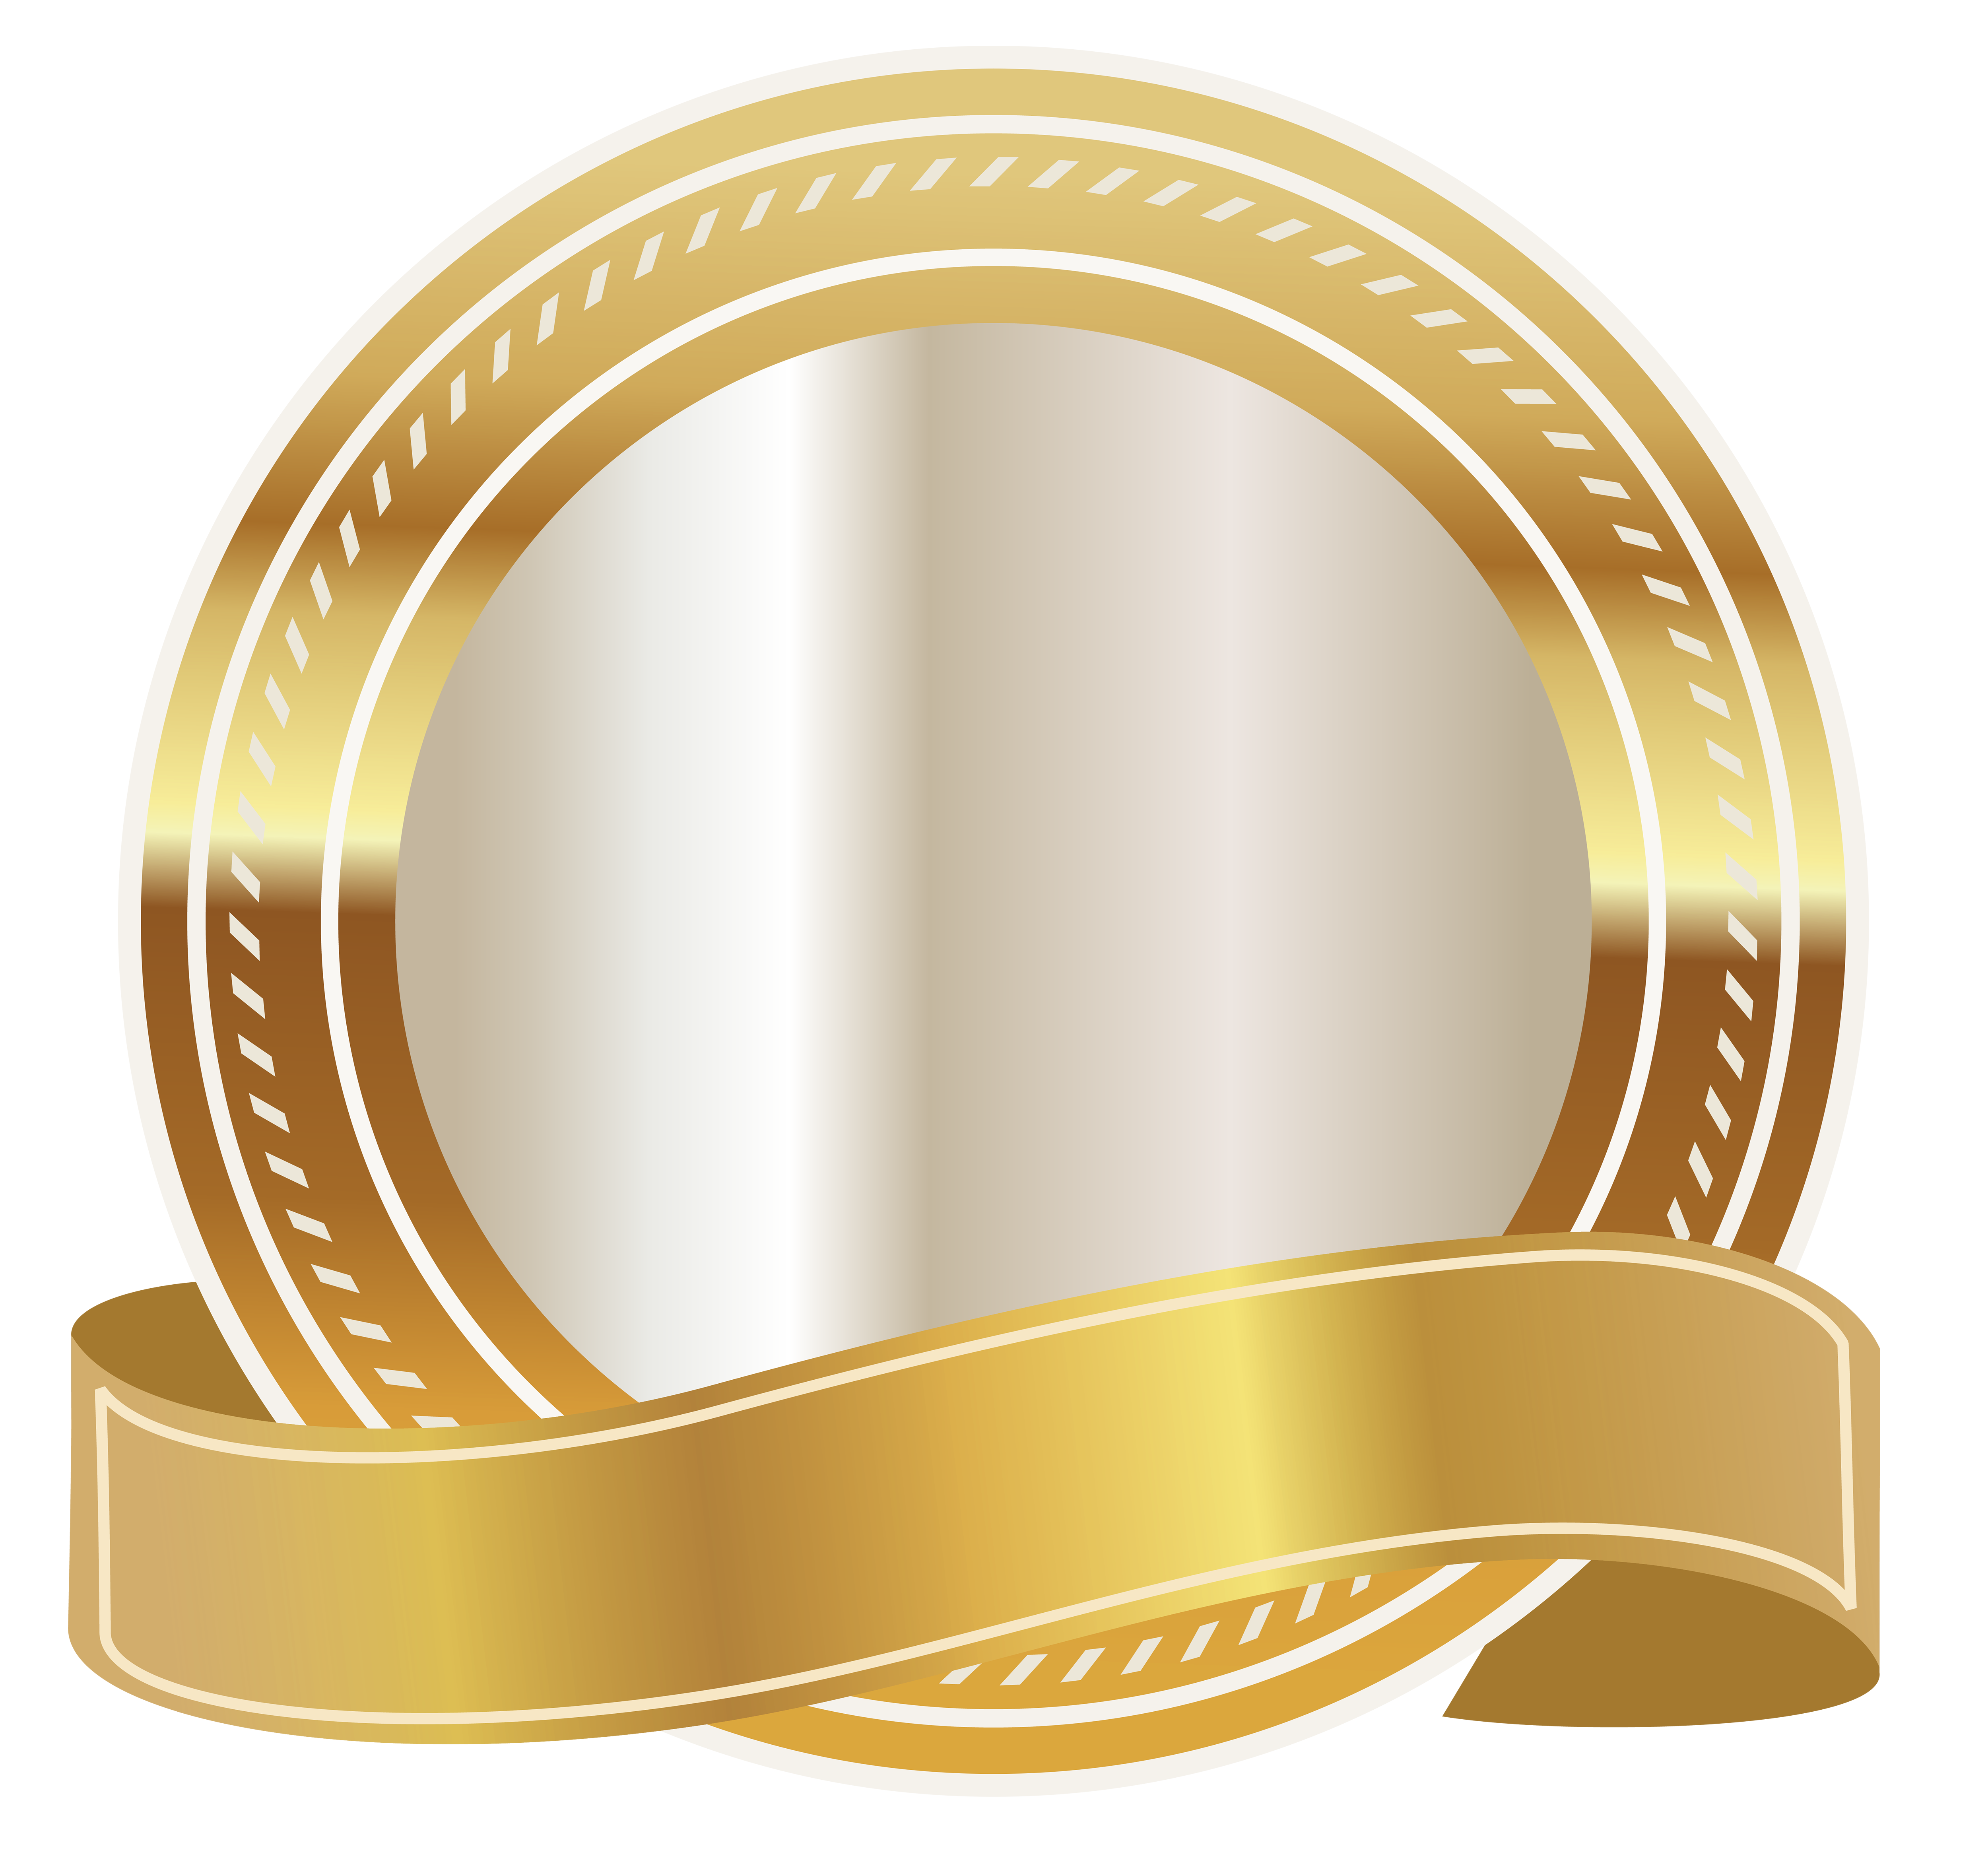 Gold ribbon png. Seal with clipart image